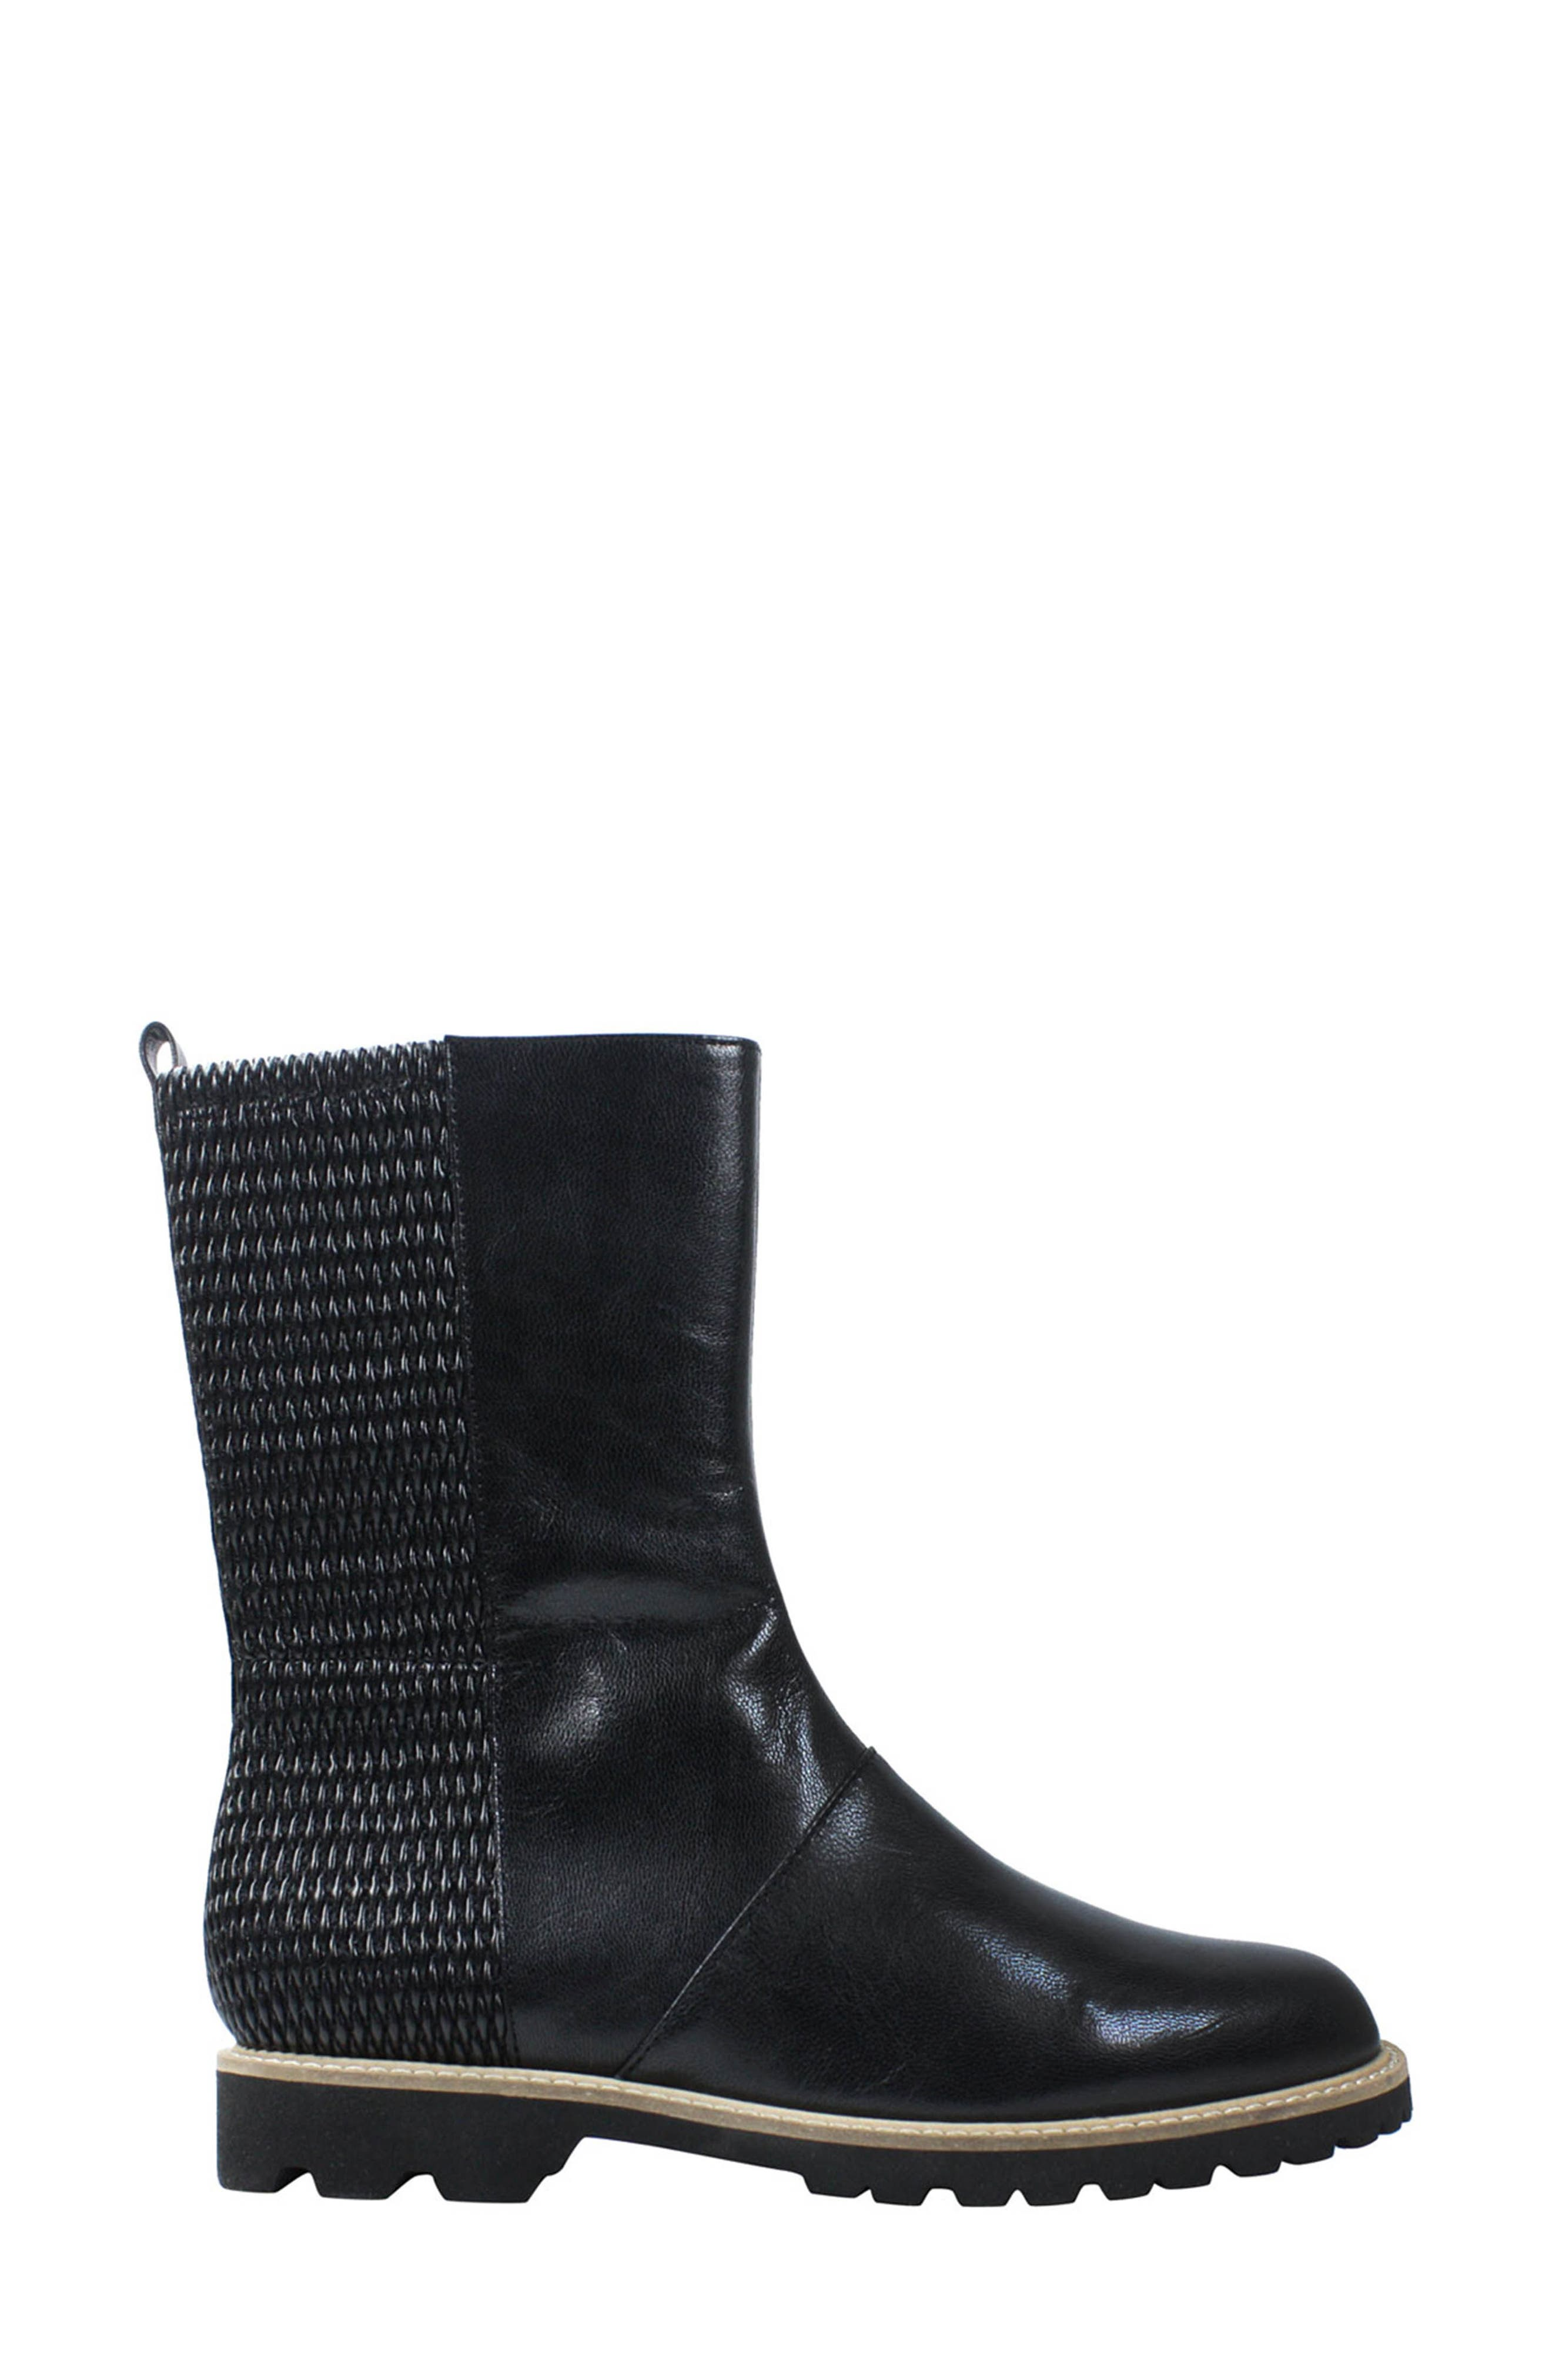 Reyney Boot,                             Alternate thumbnail 3, color,                             Black Leather